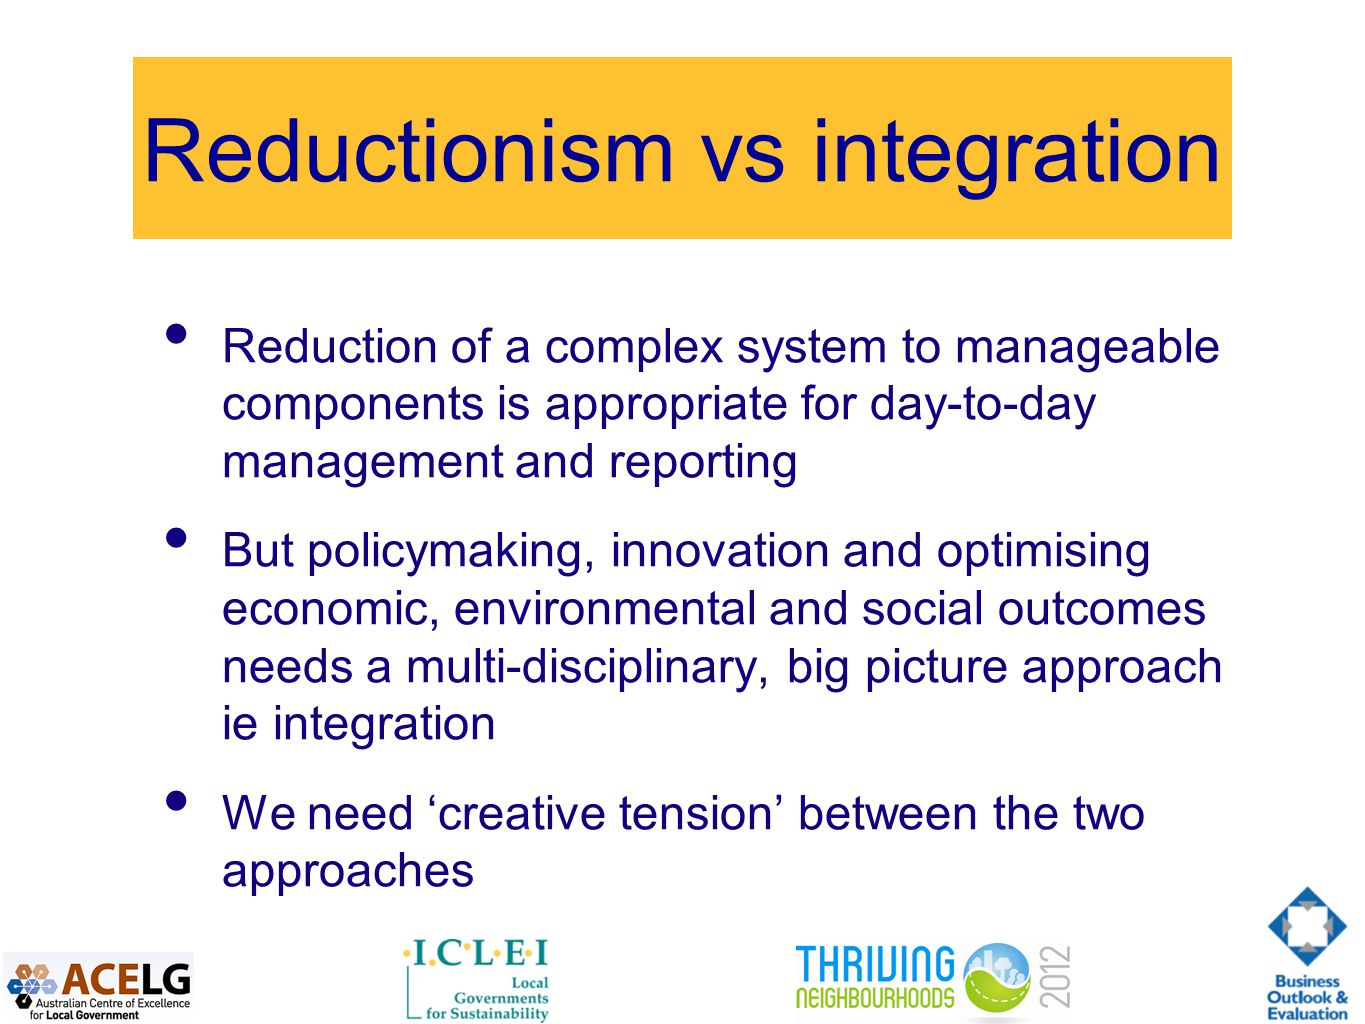 Reductionism vs integration Reduction of a complex system to manageable components is appropriate for day-to-day management and reporting But policymaking, innovation and optimising economic, environmental and social outcomes needs a multi-disciplinary, big picture approach ie integration We need 'creative tension' between the two approaches